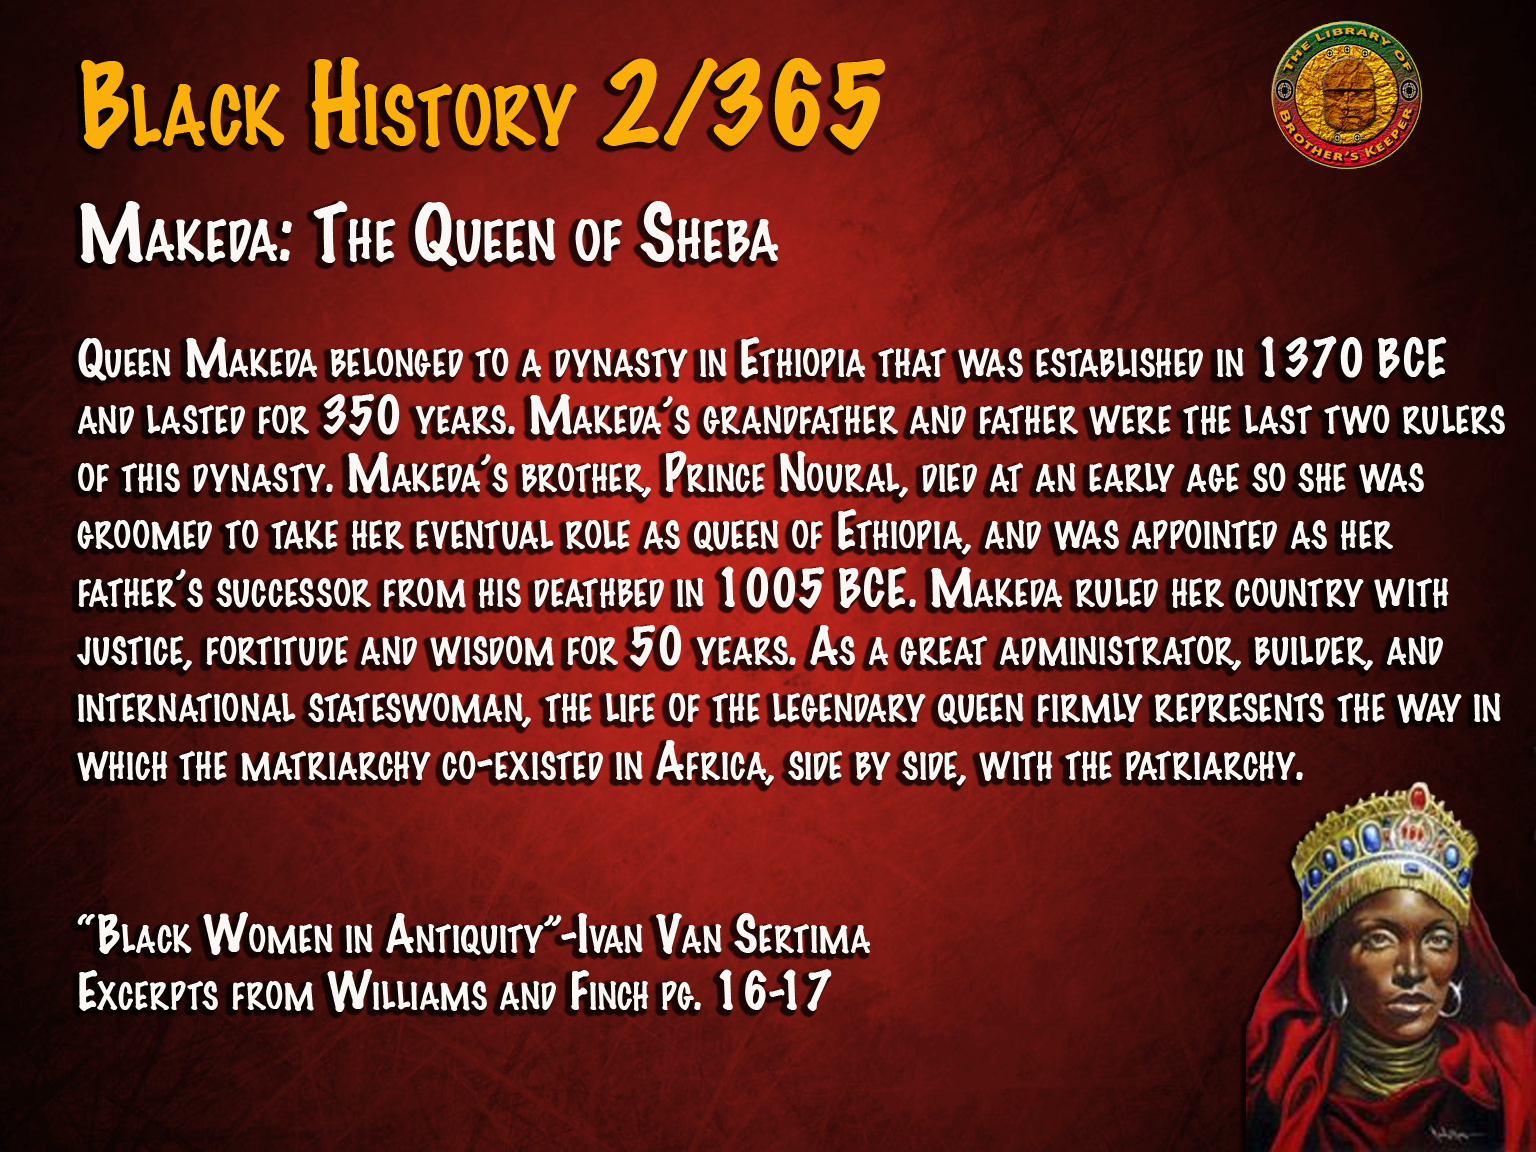 Makeda: The Queen of Sheba